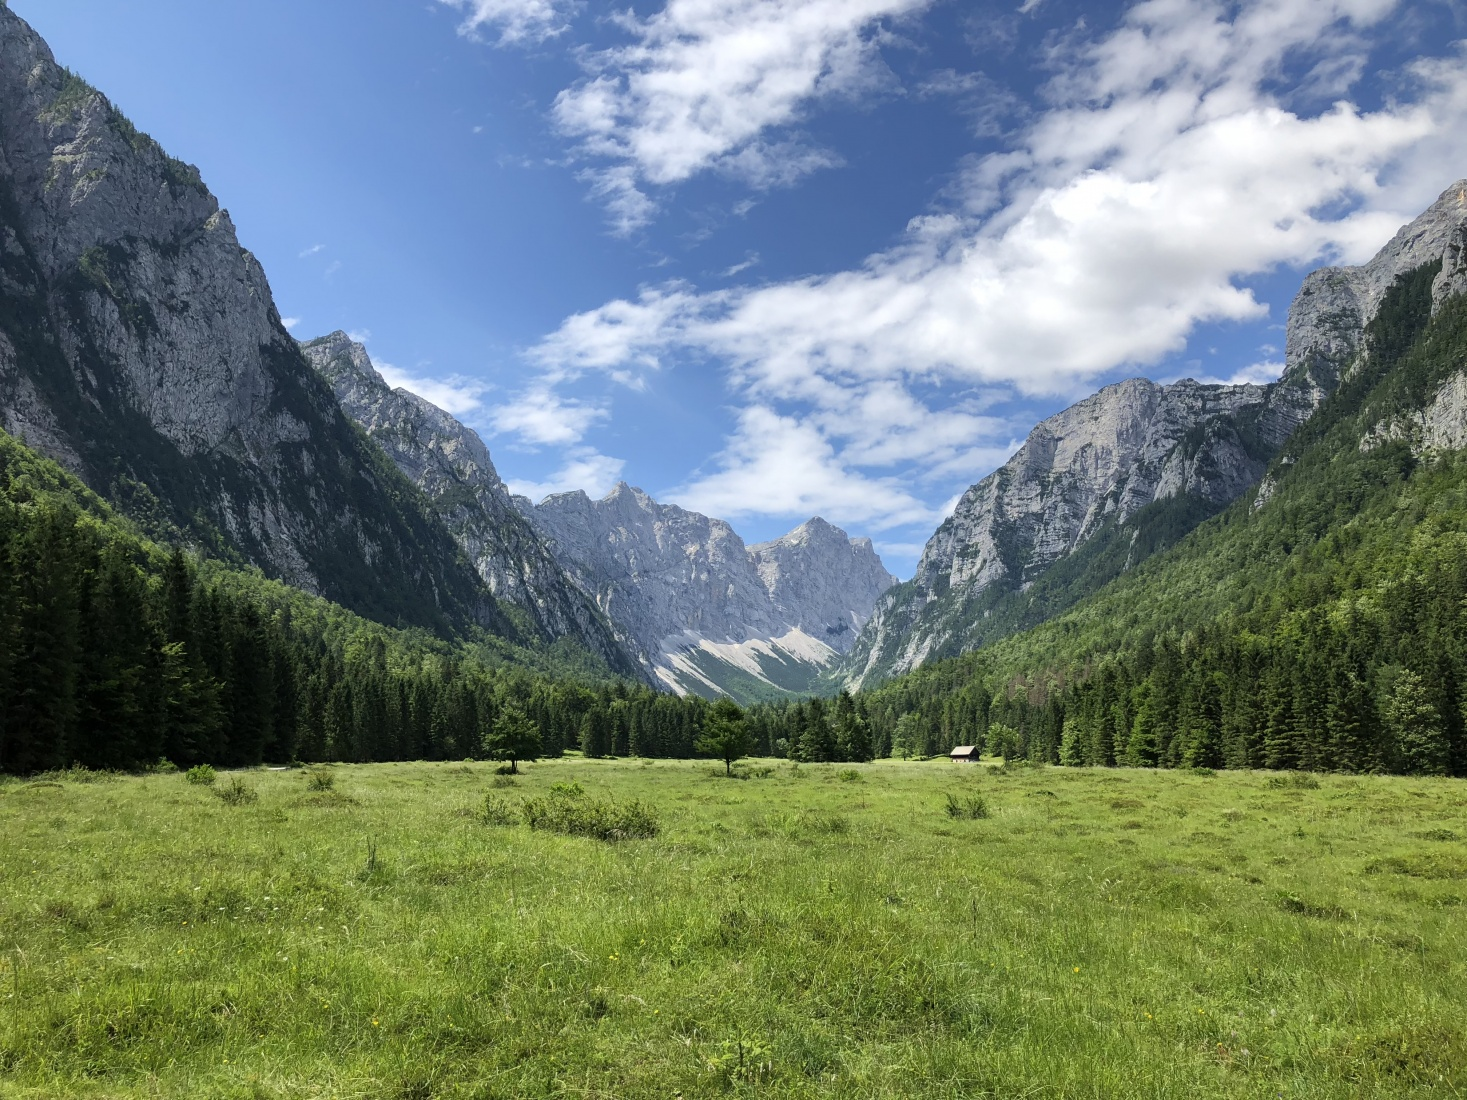 A green meadow and mountain-top photo near the center of Triglav National Park, Slovenia.